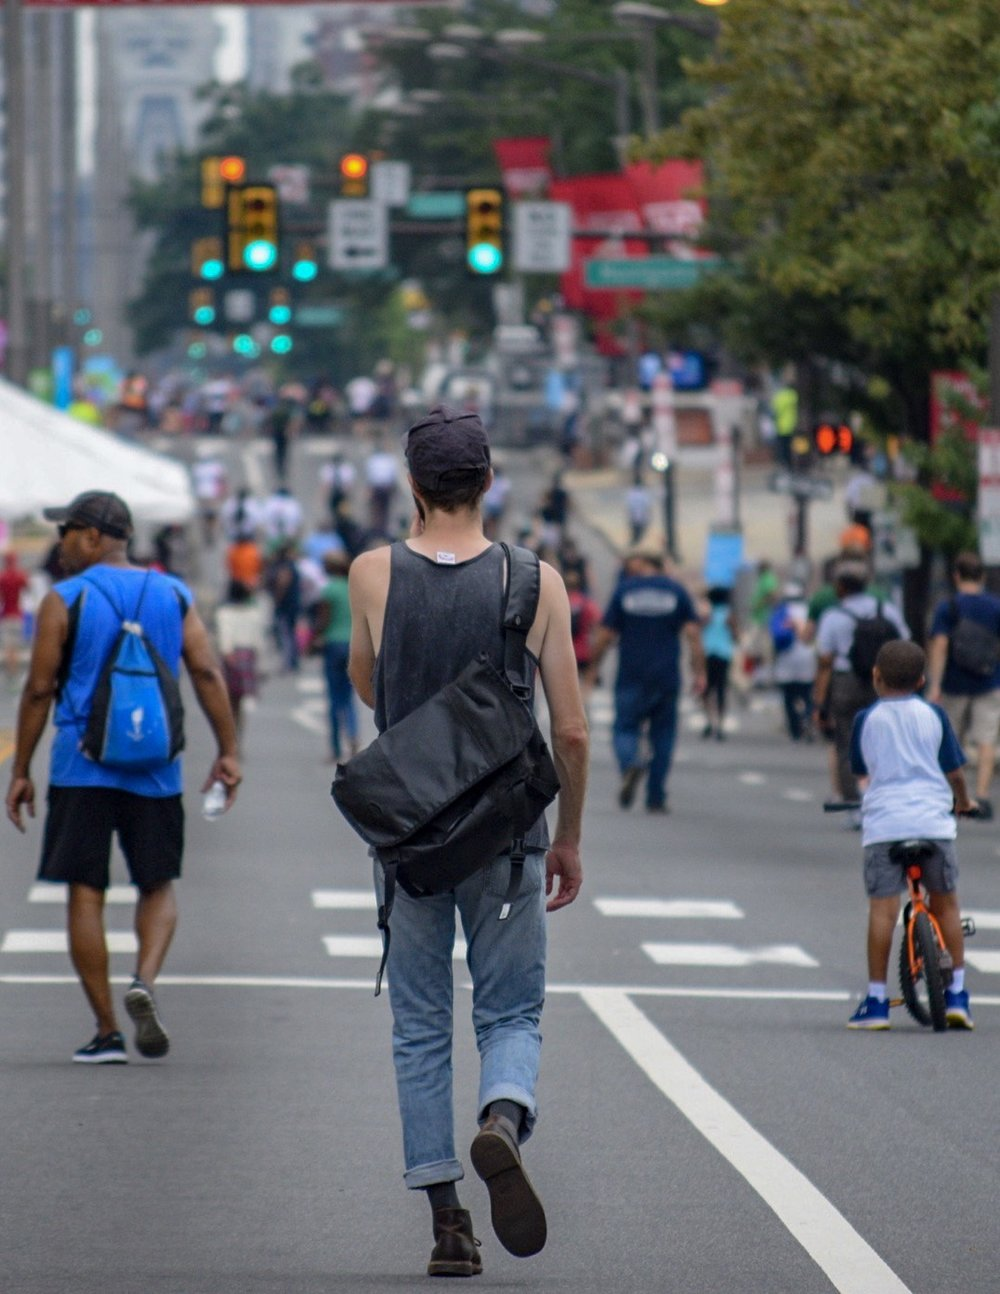 Philly Free Streets is a great way to walk, bike, or skateboard your way through a part of town you might not have visited before.